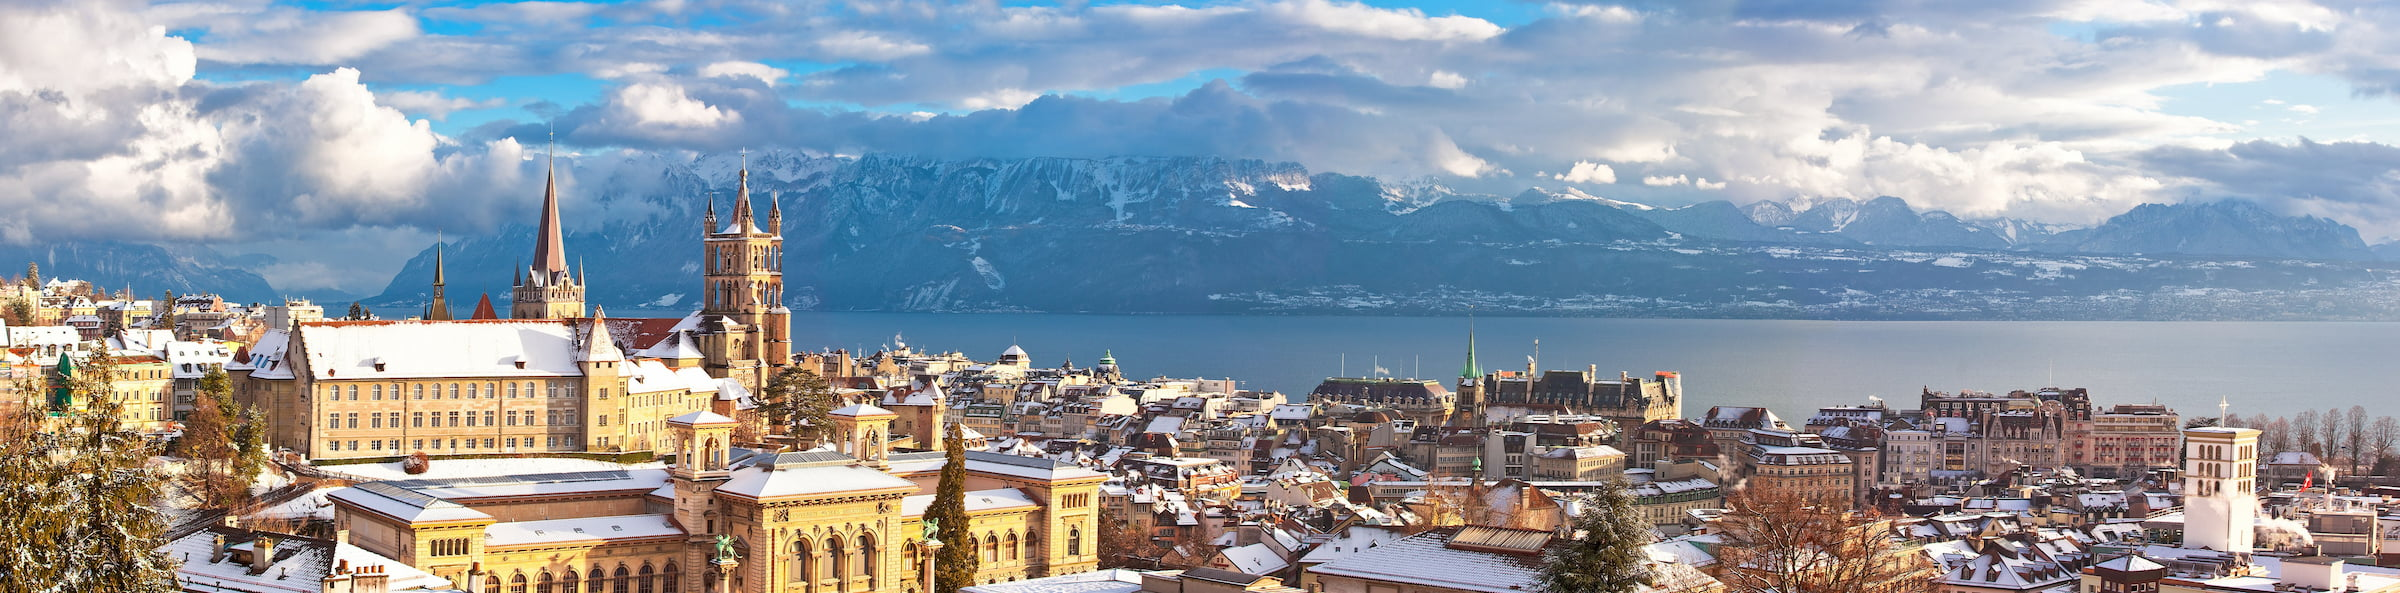 Panorama-lausanne-crystal-lausanne-vue